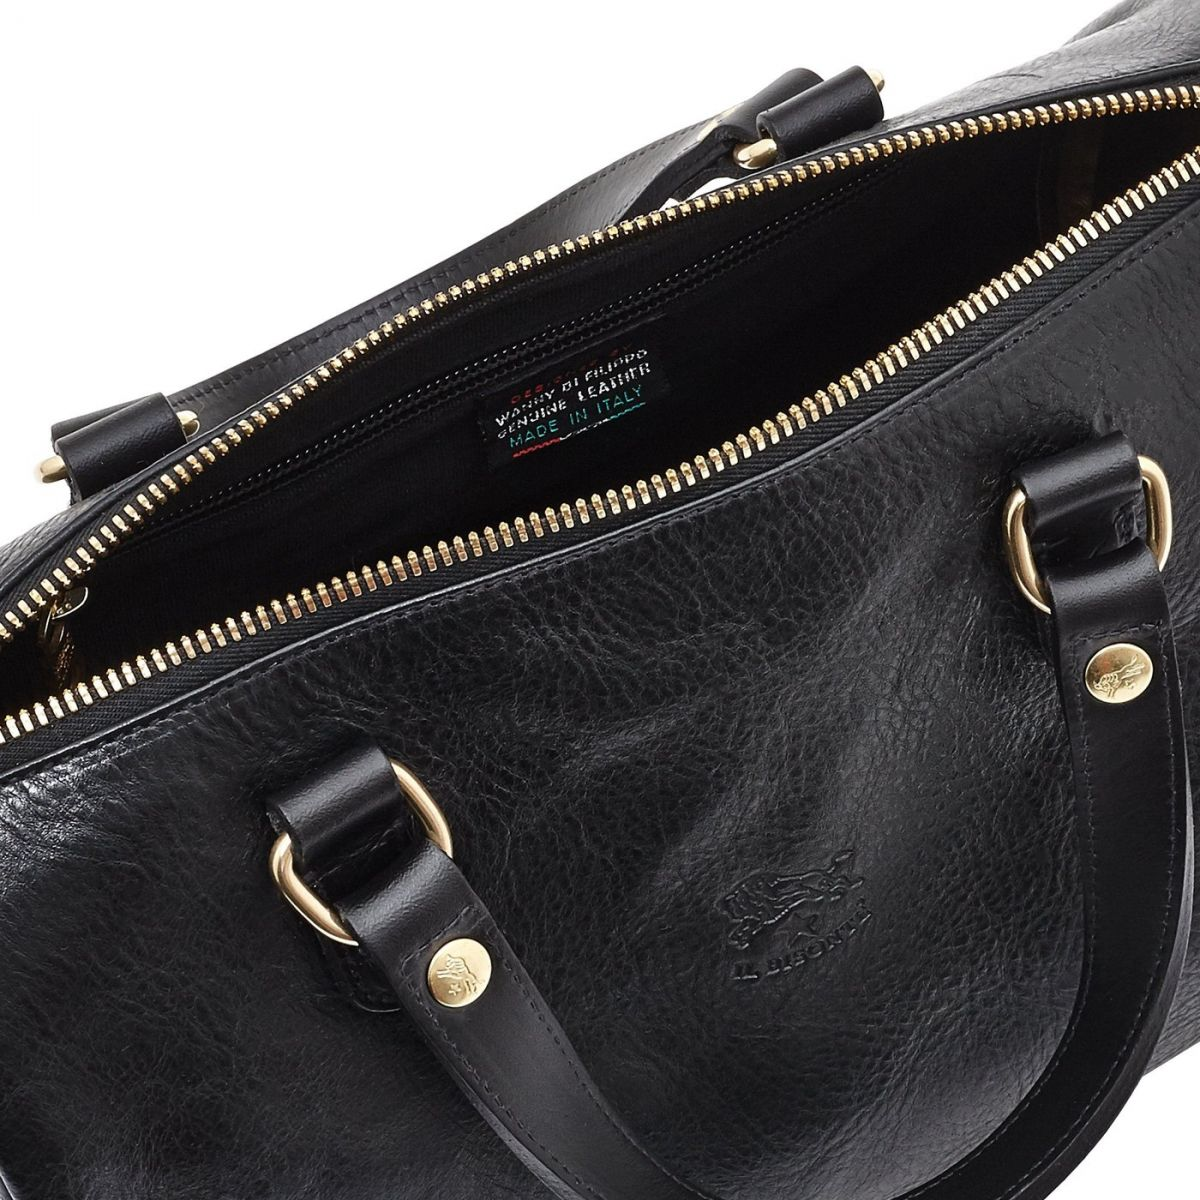 Women's Handbag in Cowhide Double Leather BTH019 color Black | Details